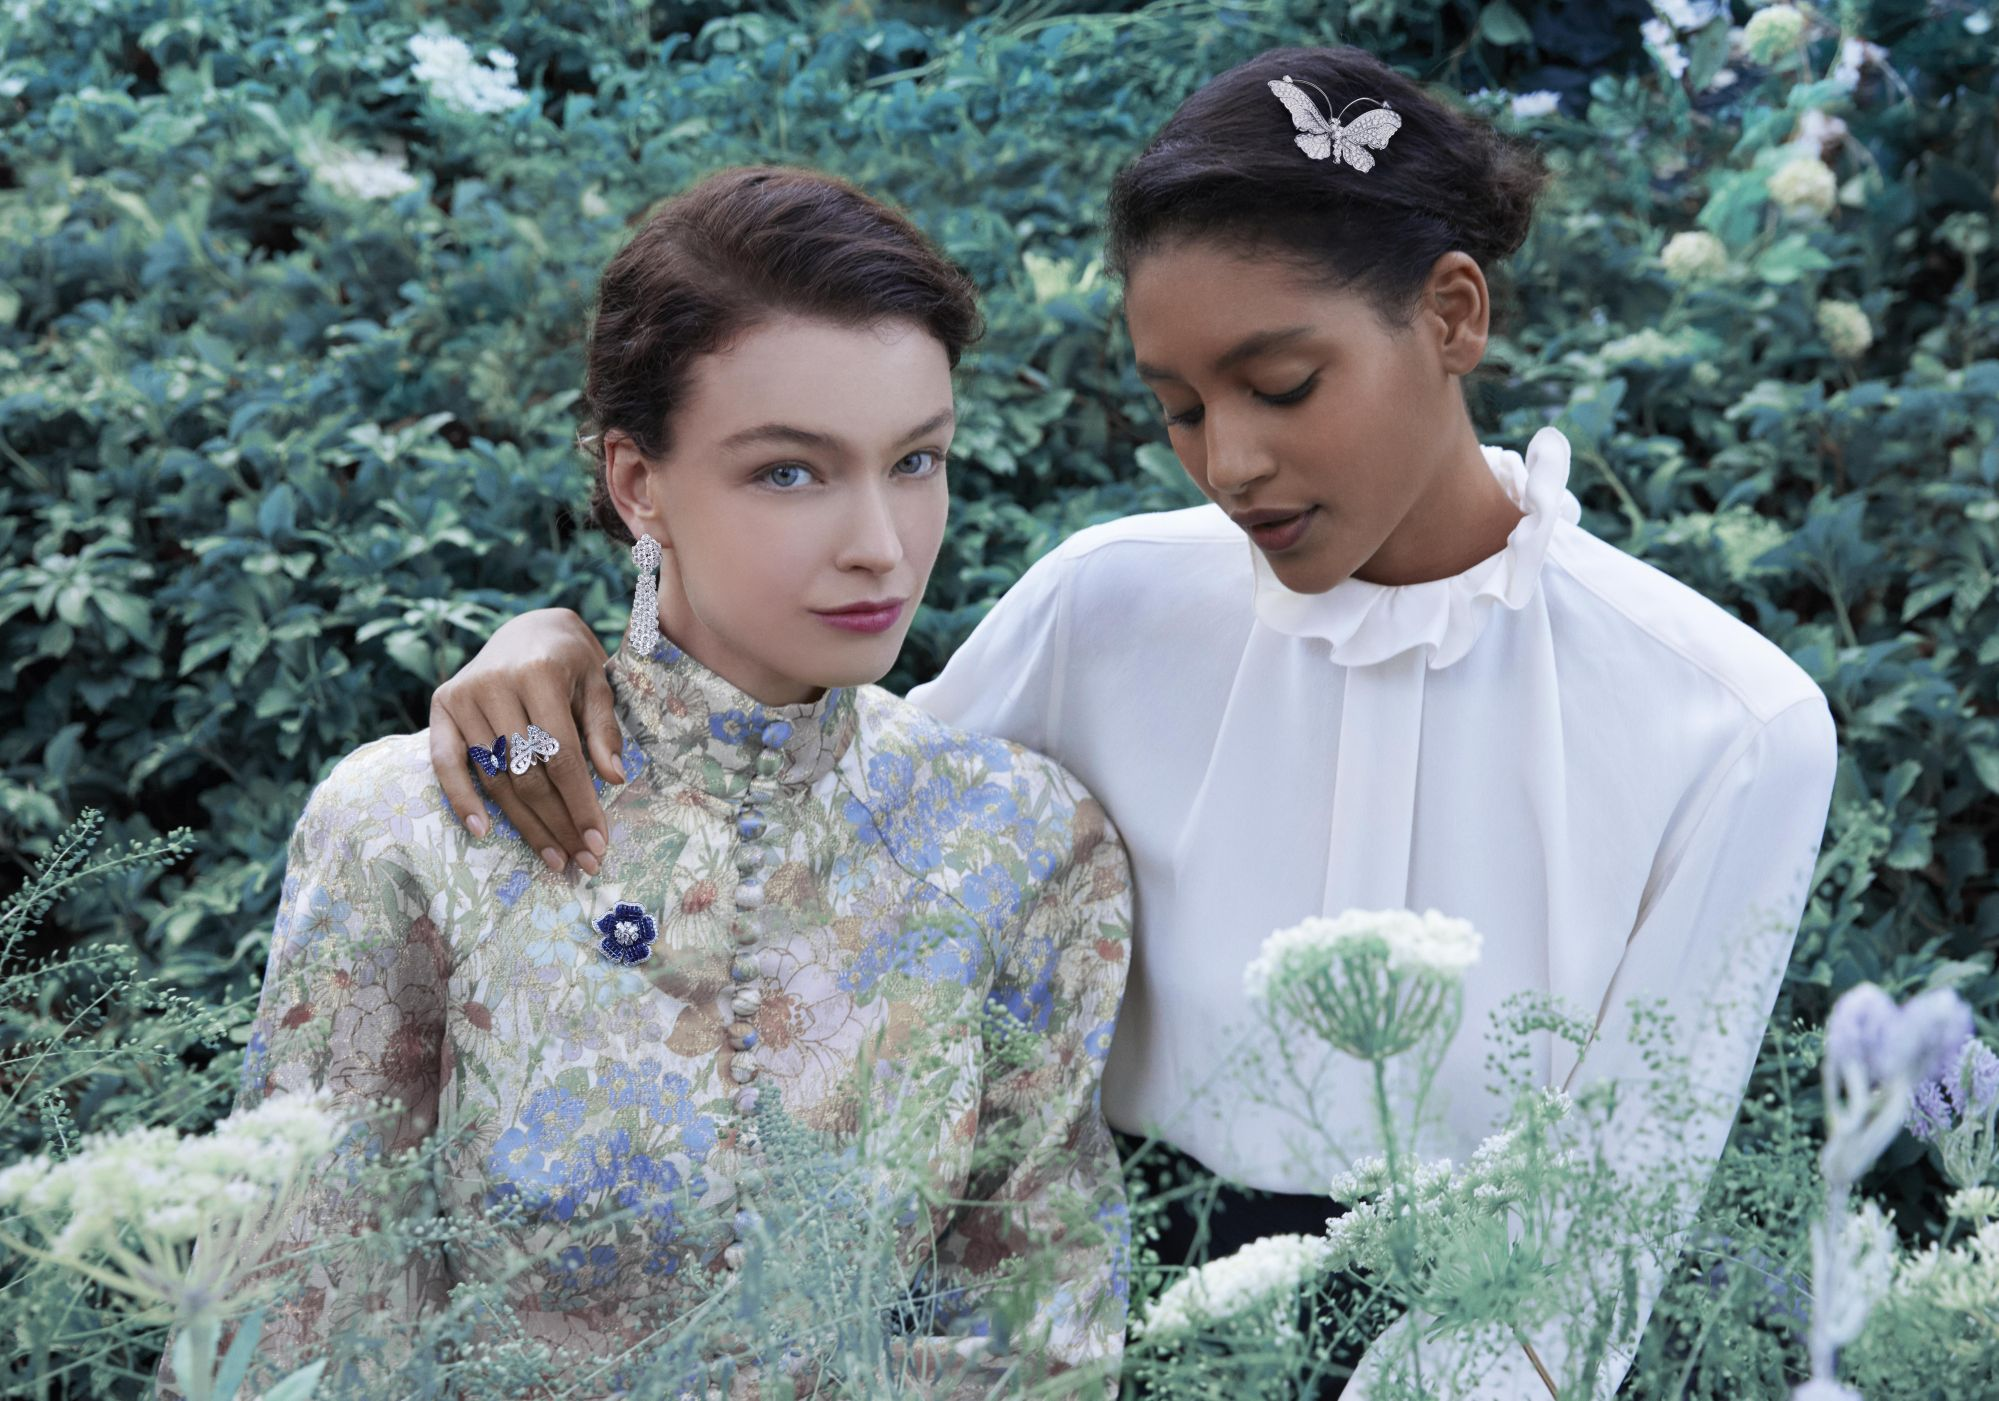 Photo by Erik Madigan Heck - Spring shooting 2021À Cheval earrings with detachable pendants, platinum, white gold, diamondsPetit Gloxinia clip, platinum, rose gold, white gold, Traditional Mystery Set sapphires, diamondsFlying Butterfly Between the Finger Ring, white gold, rose gold, buff-topped Traditional Mystery Set sapphires, diamondsBelle-dame butterfly clip, white gold, diamonds